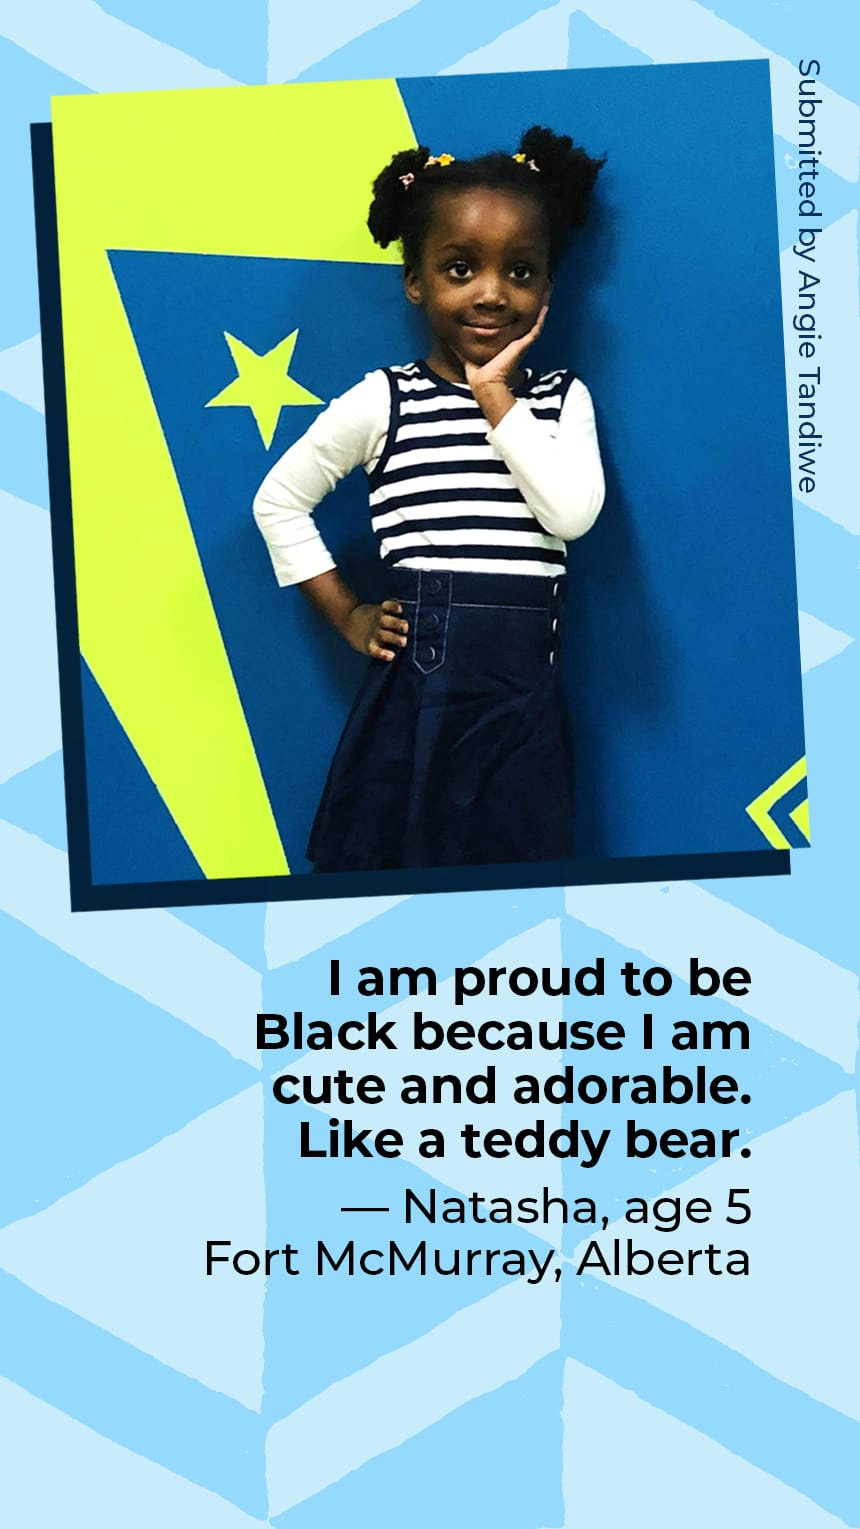 """""""I am proud to be Black because I am cute and adorable. Like a teddy bear."""" Natasha  Age 5 Fort McMurray, Alberta"""